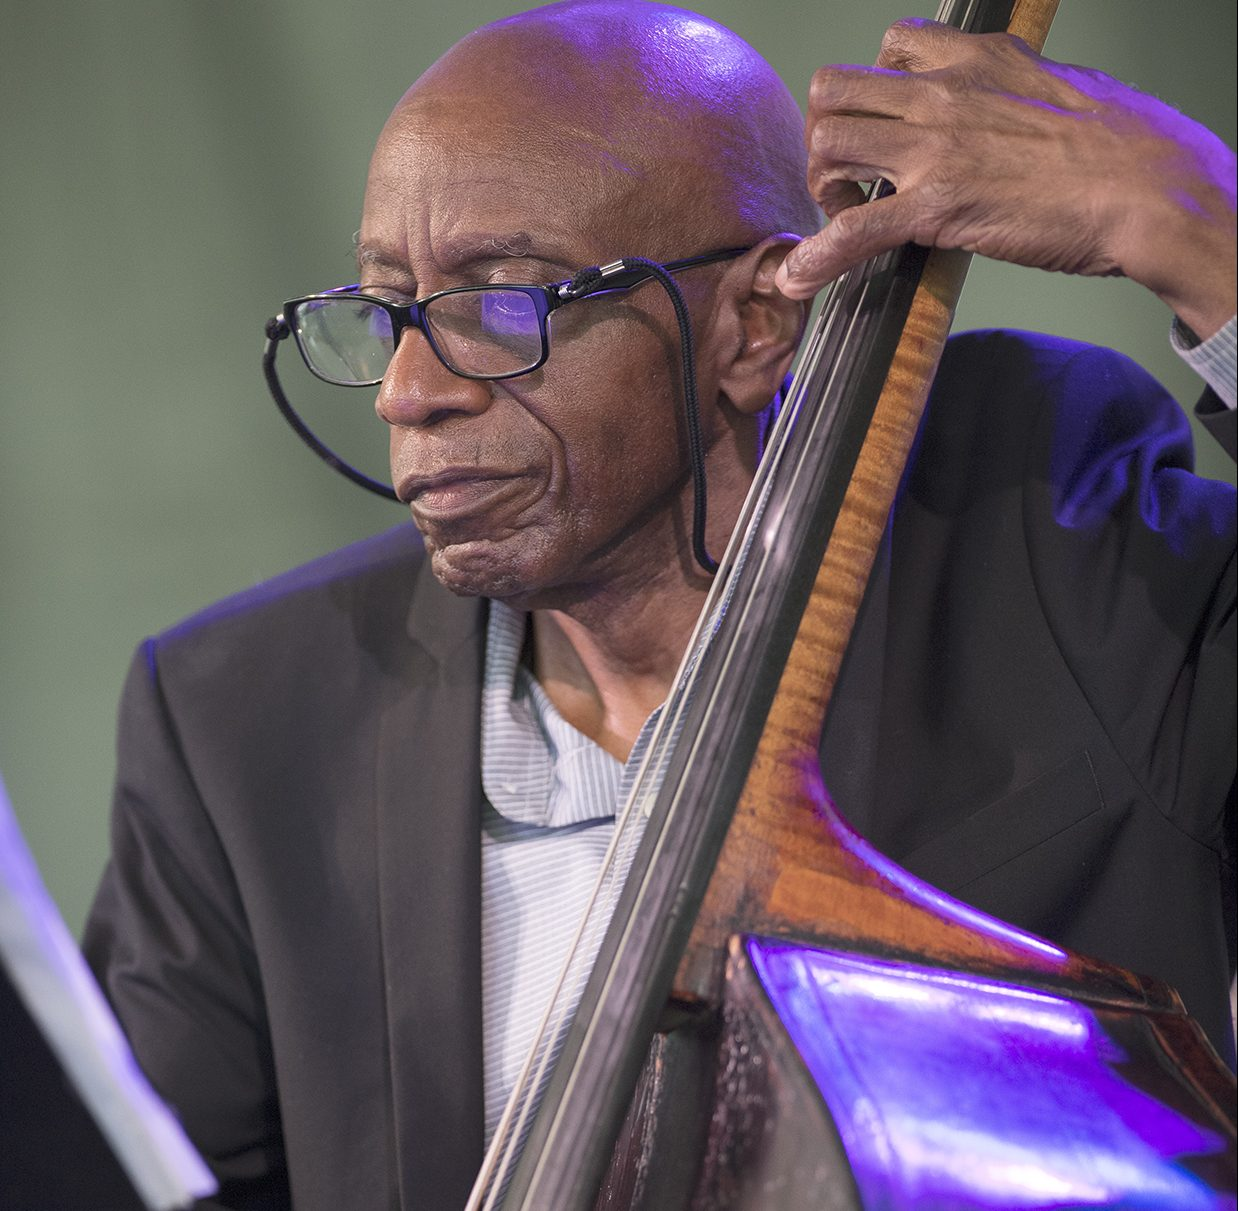 Reggie Workman at the 2018 Newport Jazz Festival